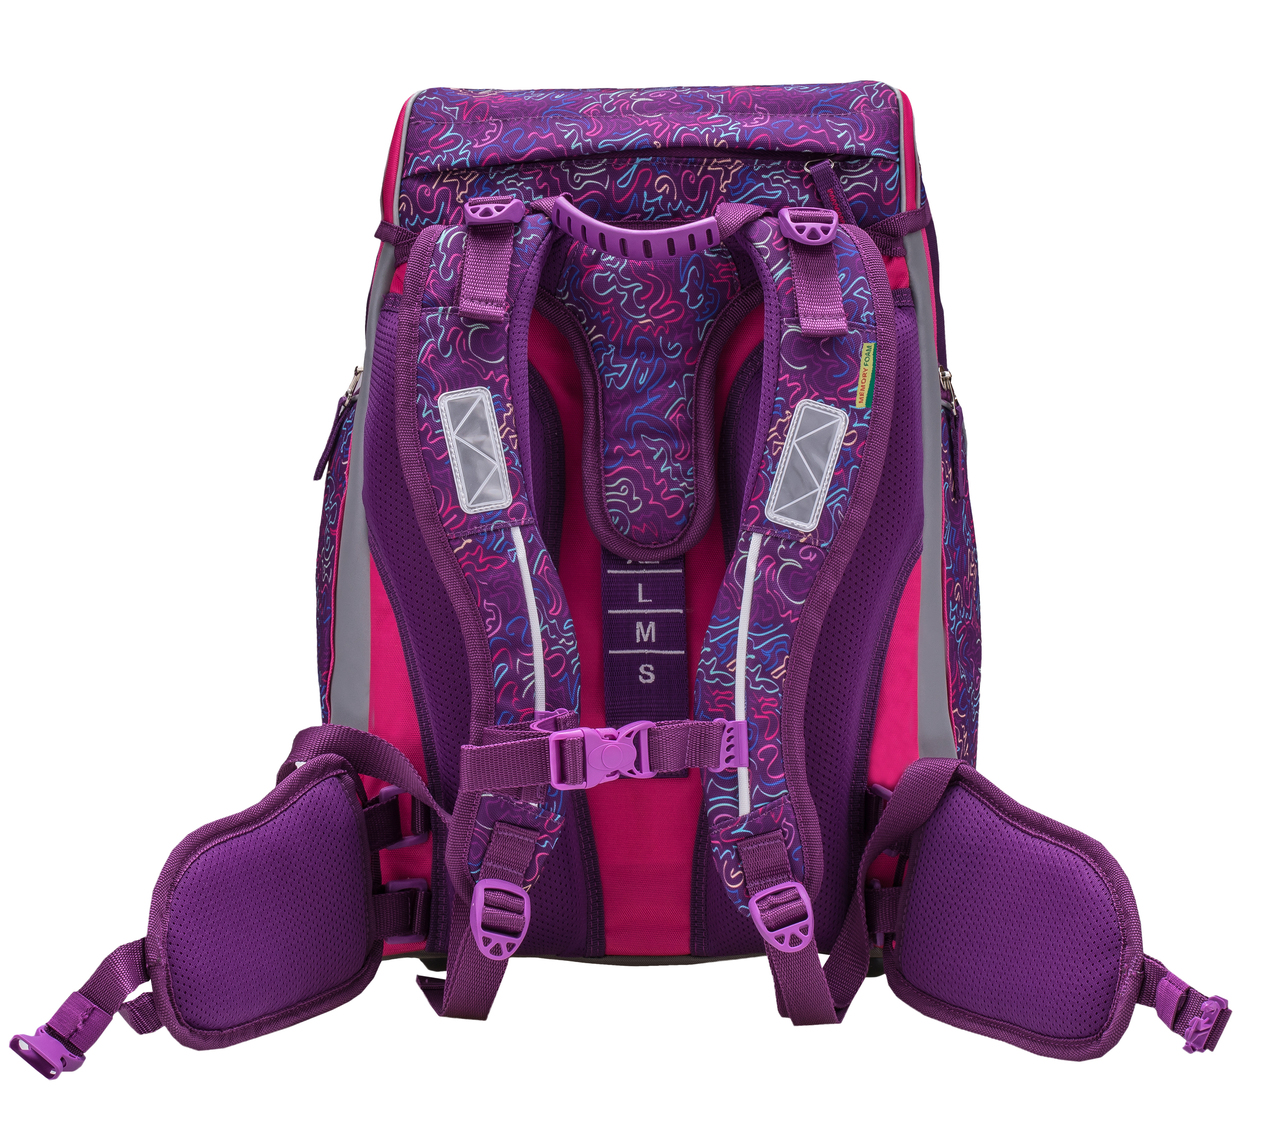 Ранец-рюкзак Belmil Comfy Pack 405-11/683 цвет Pink & Purple Harmony+ дождевик, - фото 6